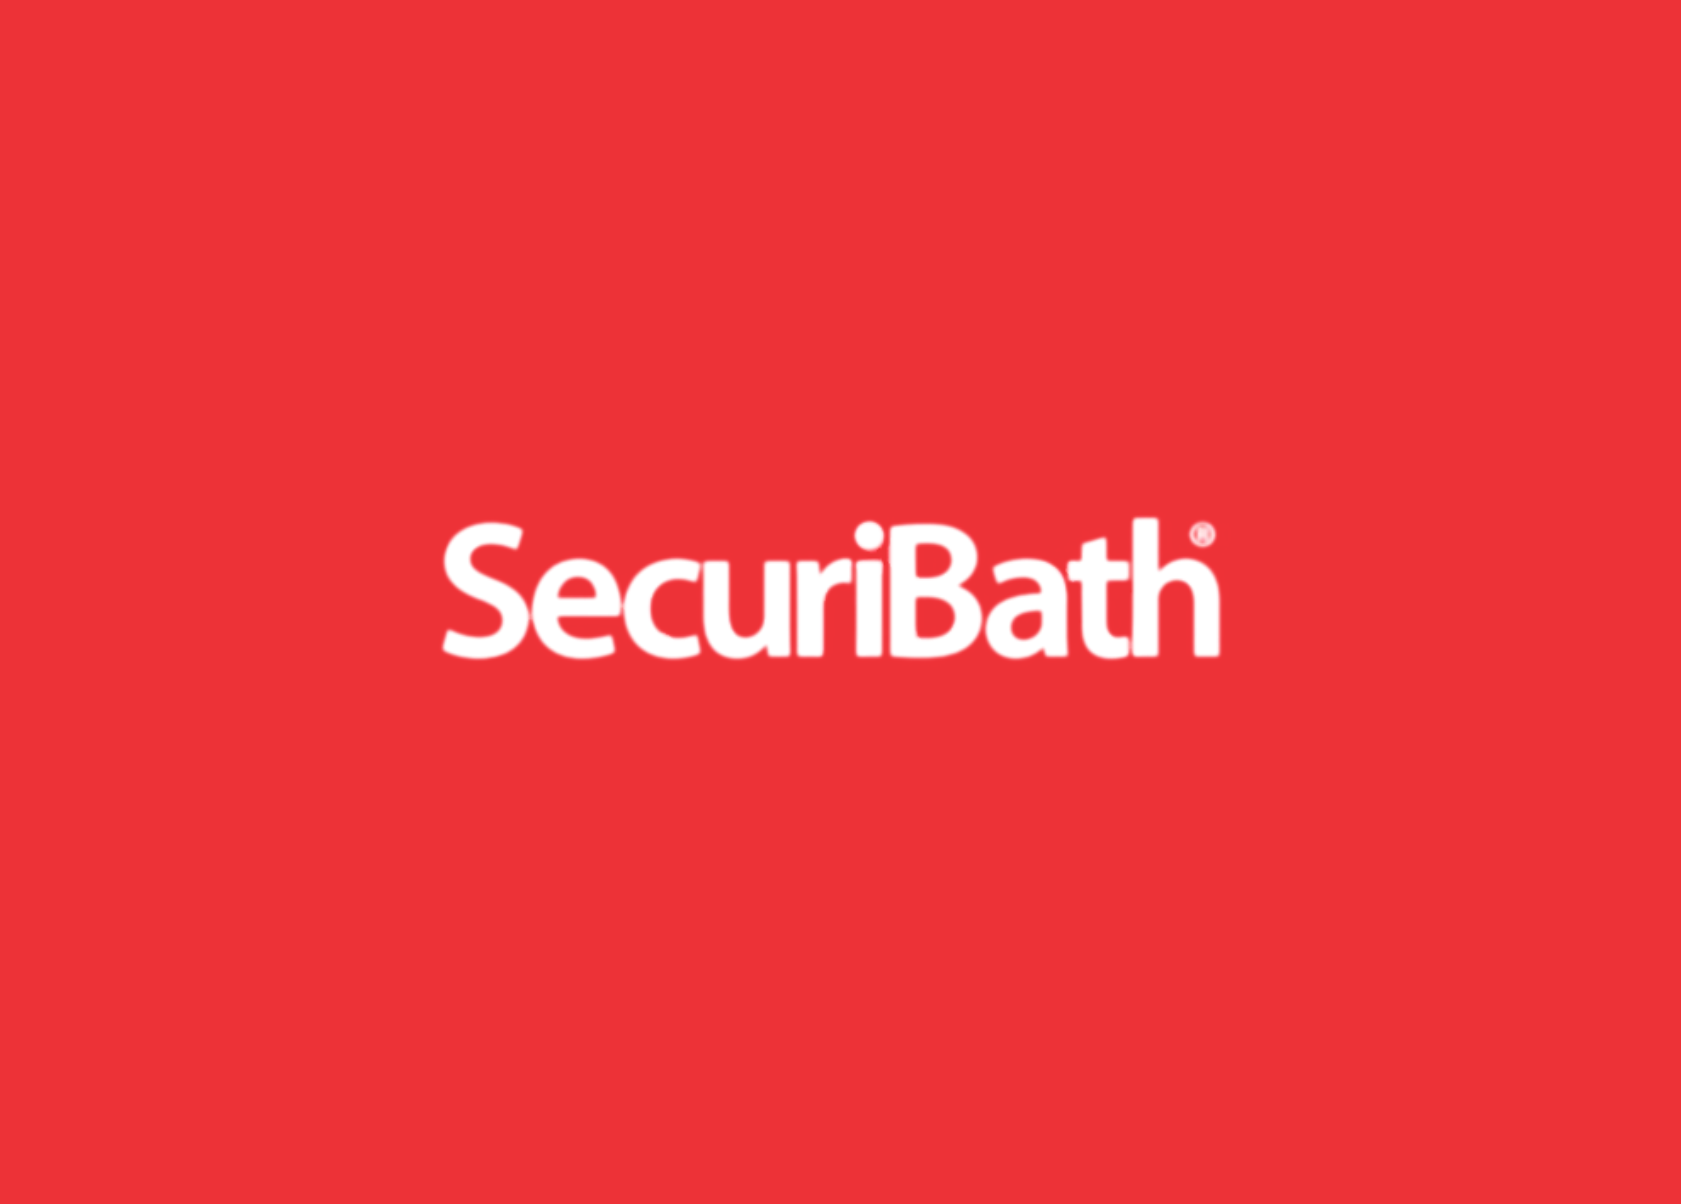 SecuriBath